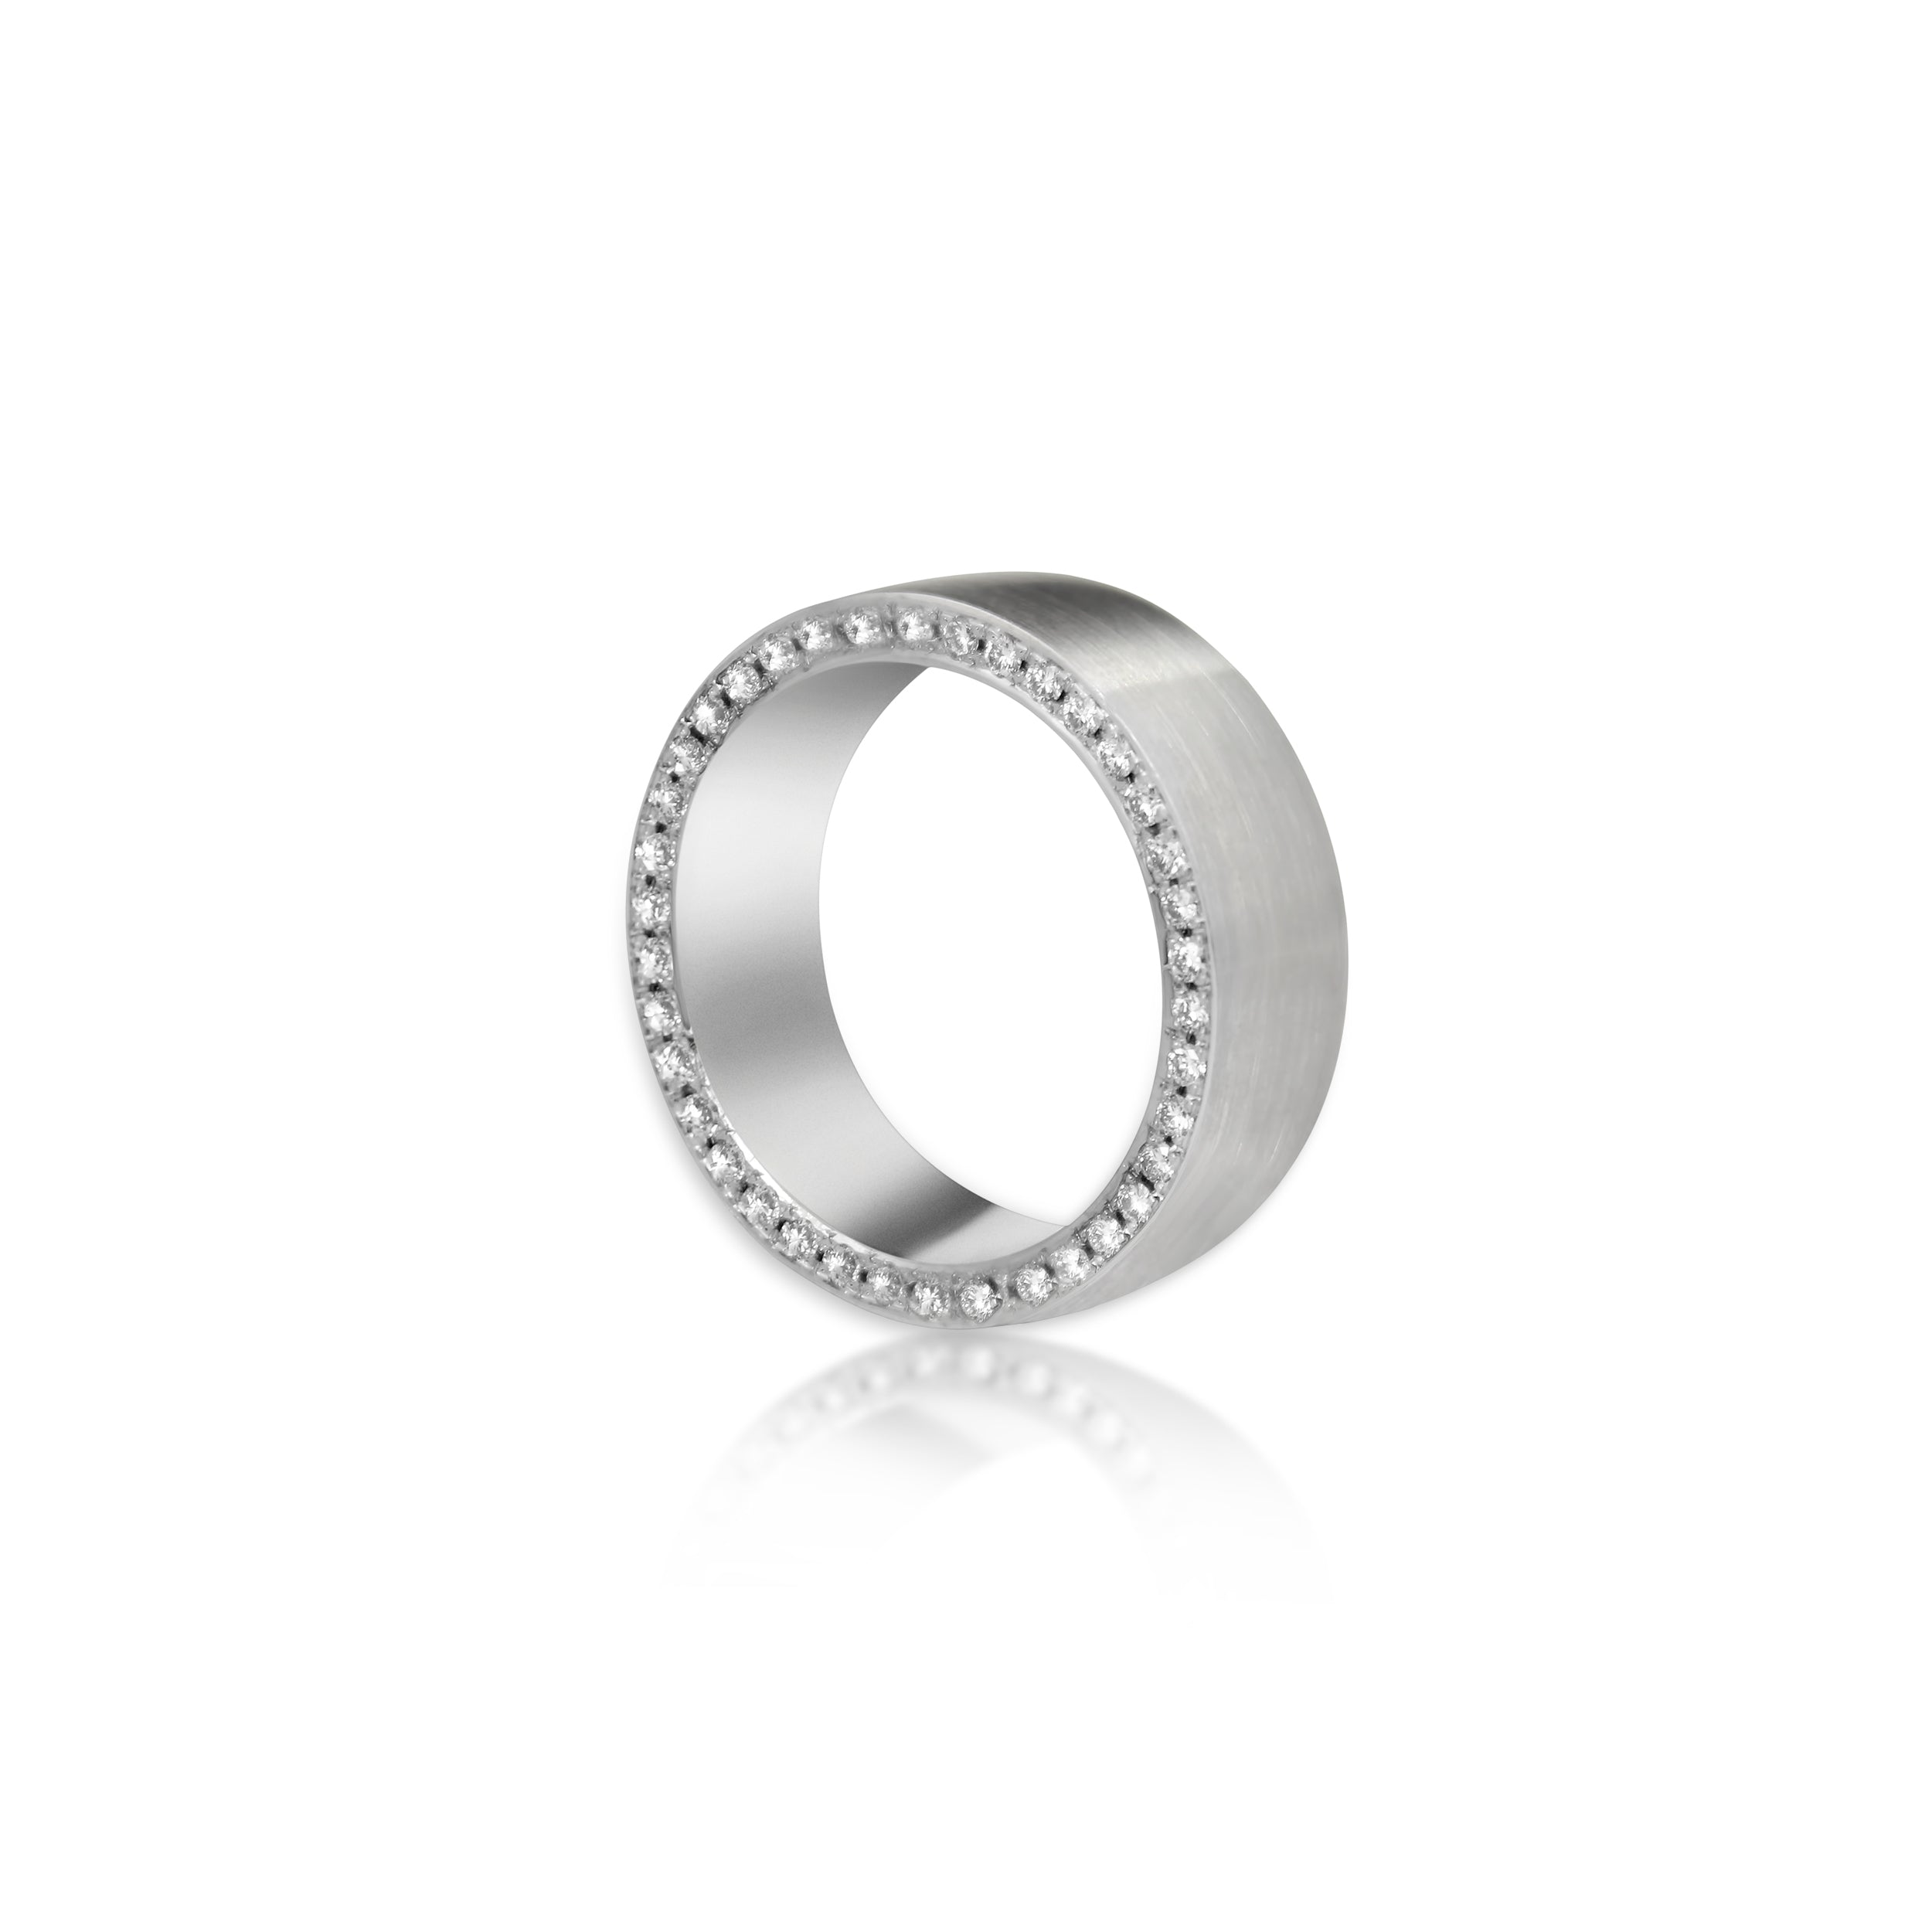 14kt White Gold Matte Finish, Diamond Bead